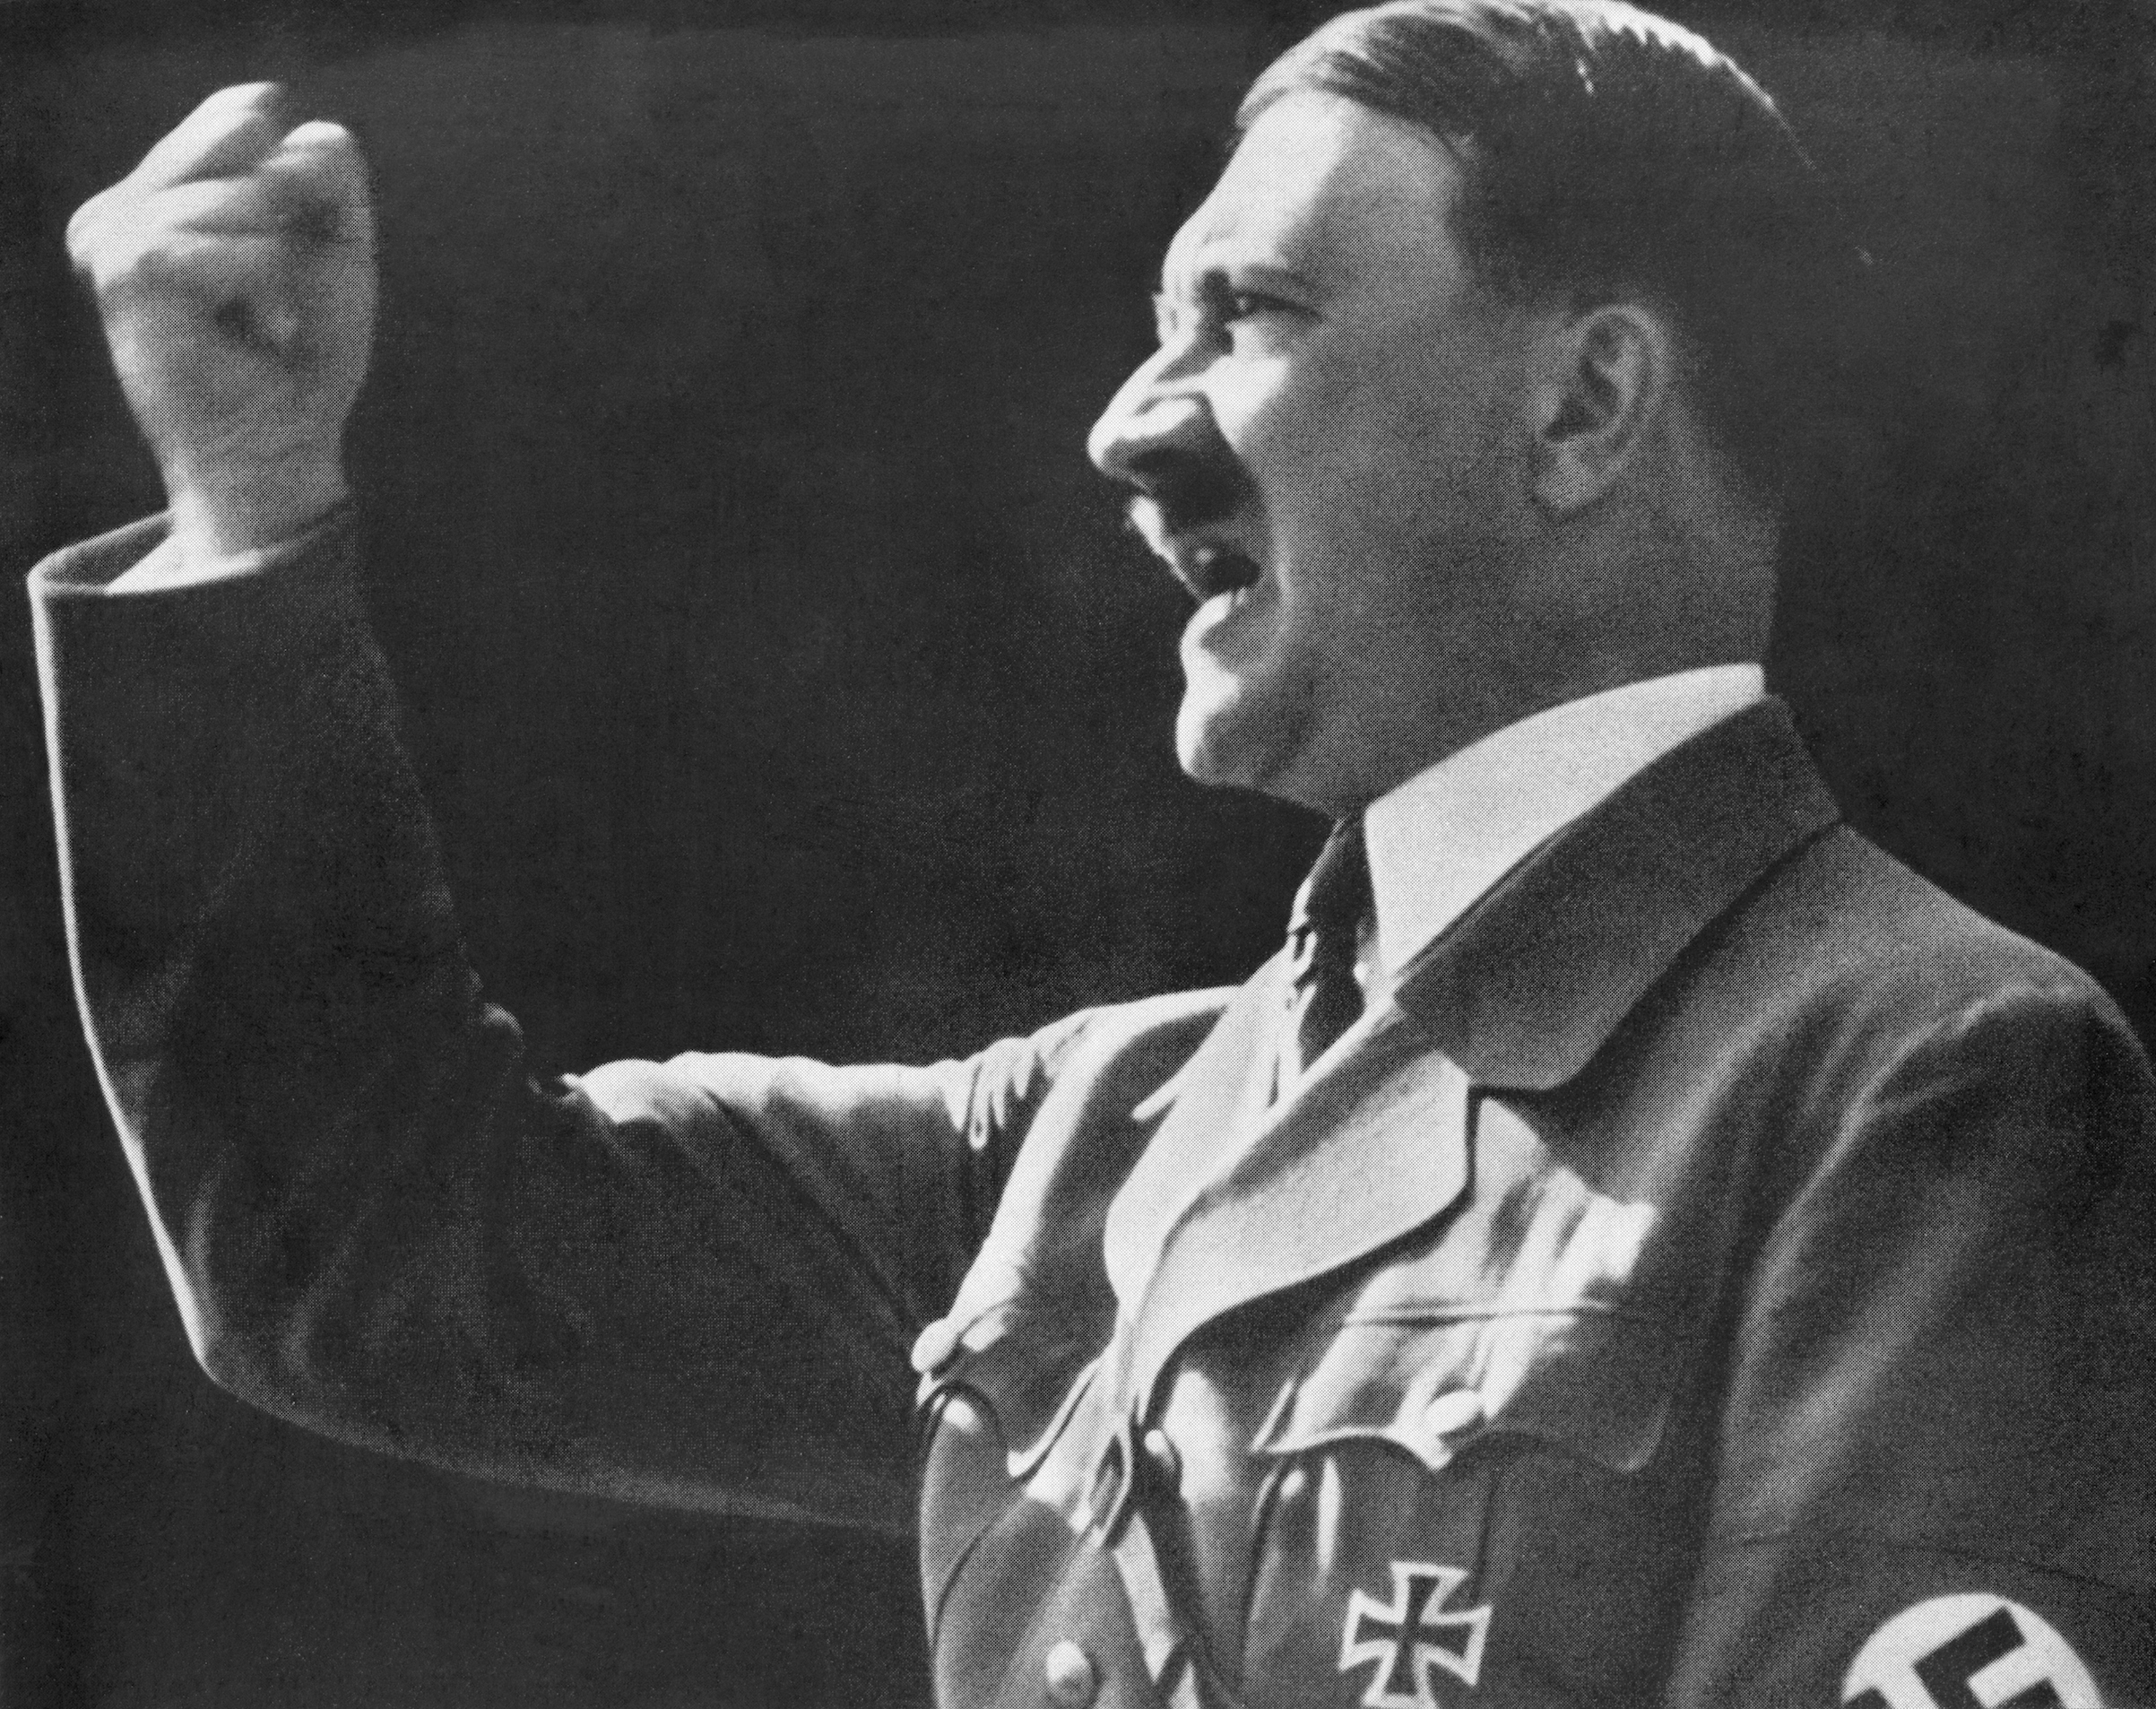 Adolf Hitler raises a defiant, clenched fist during a speech.